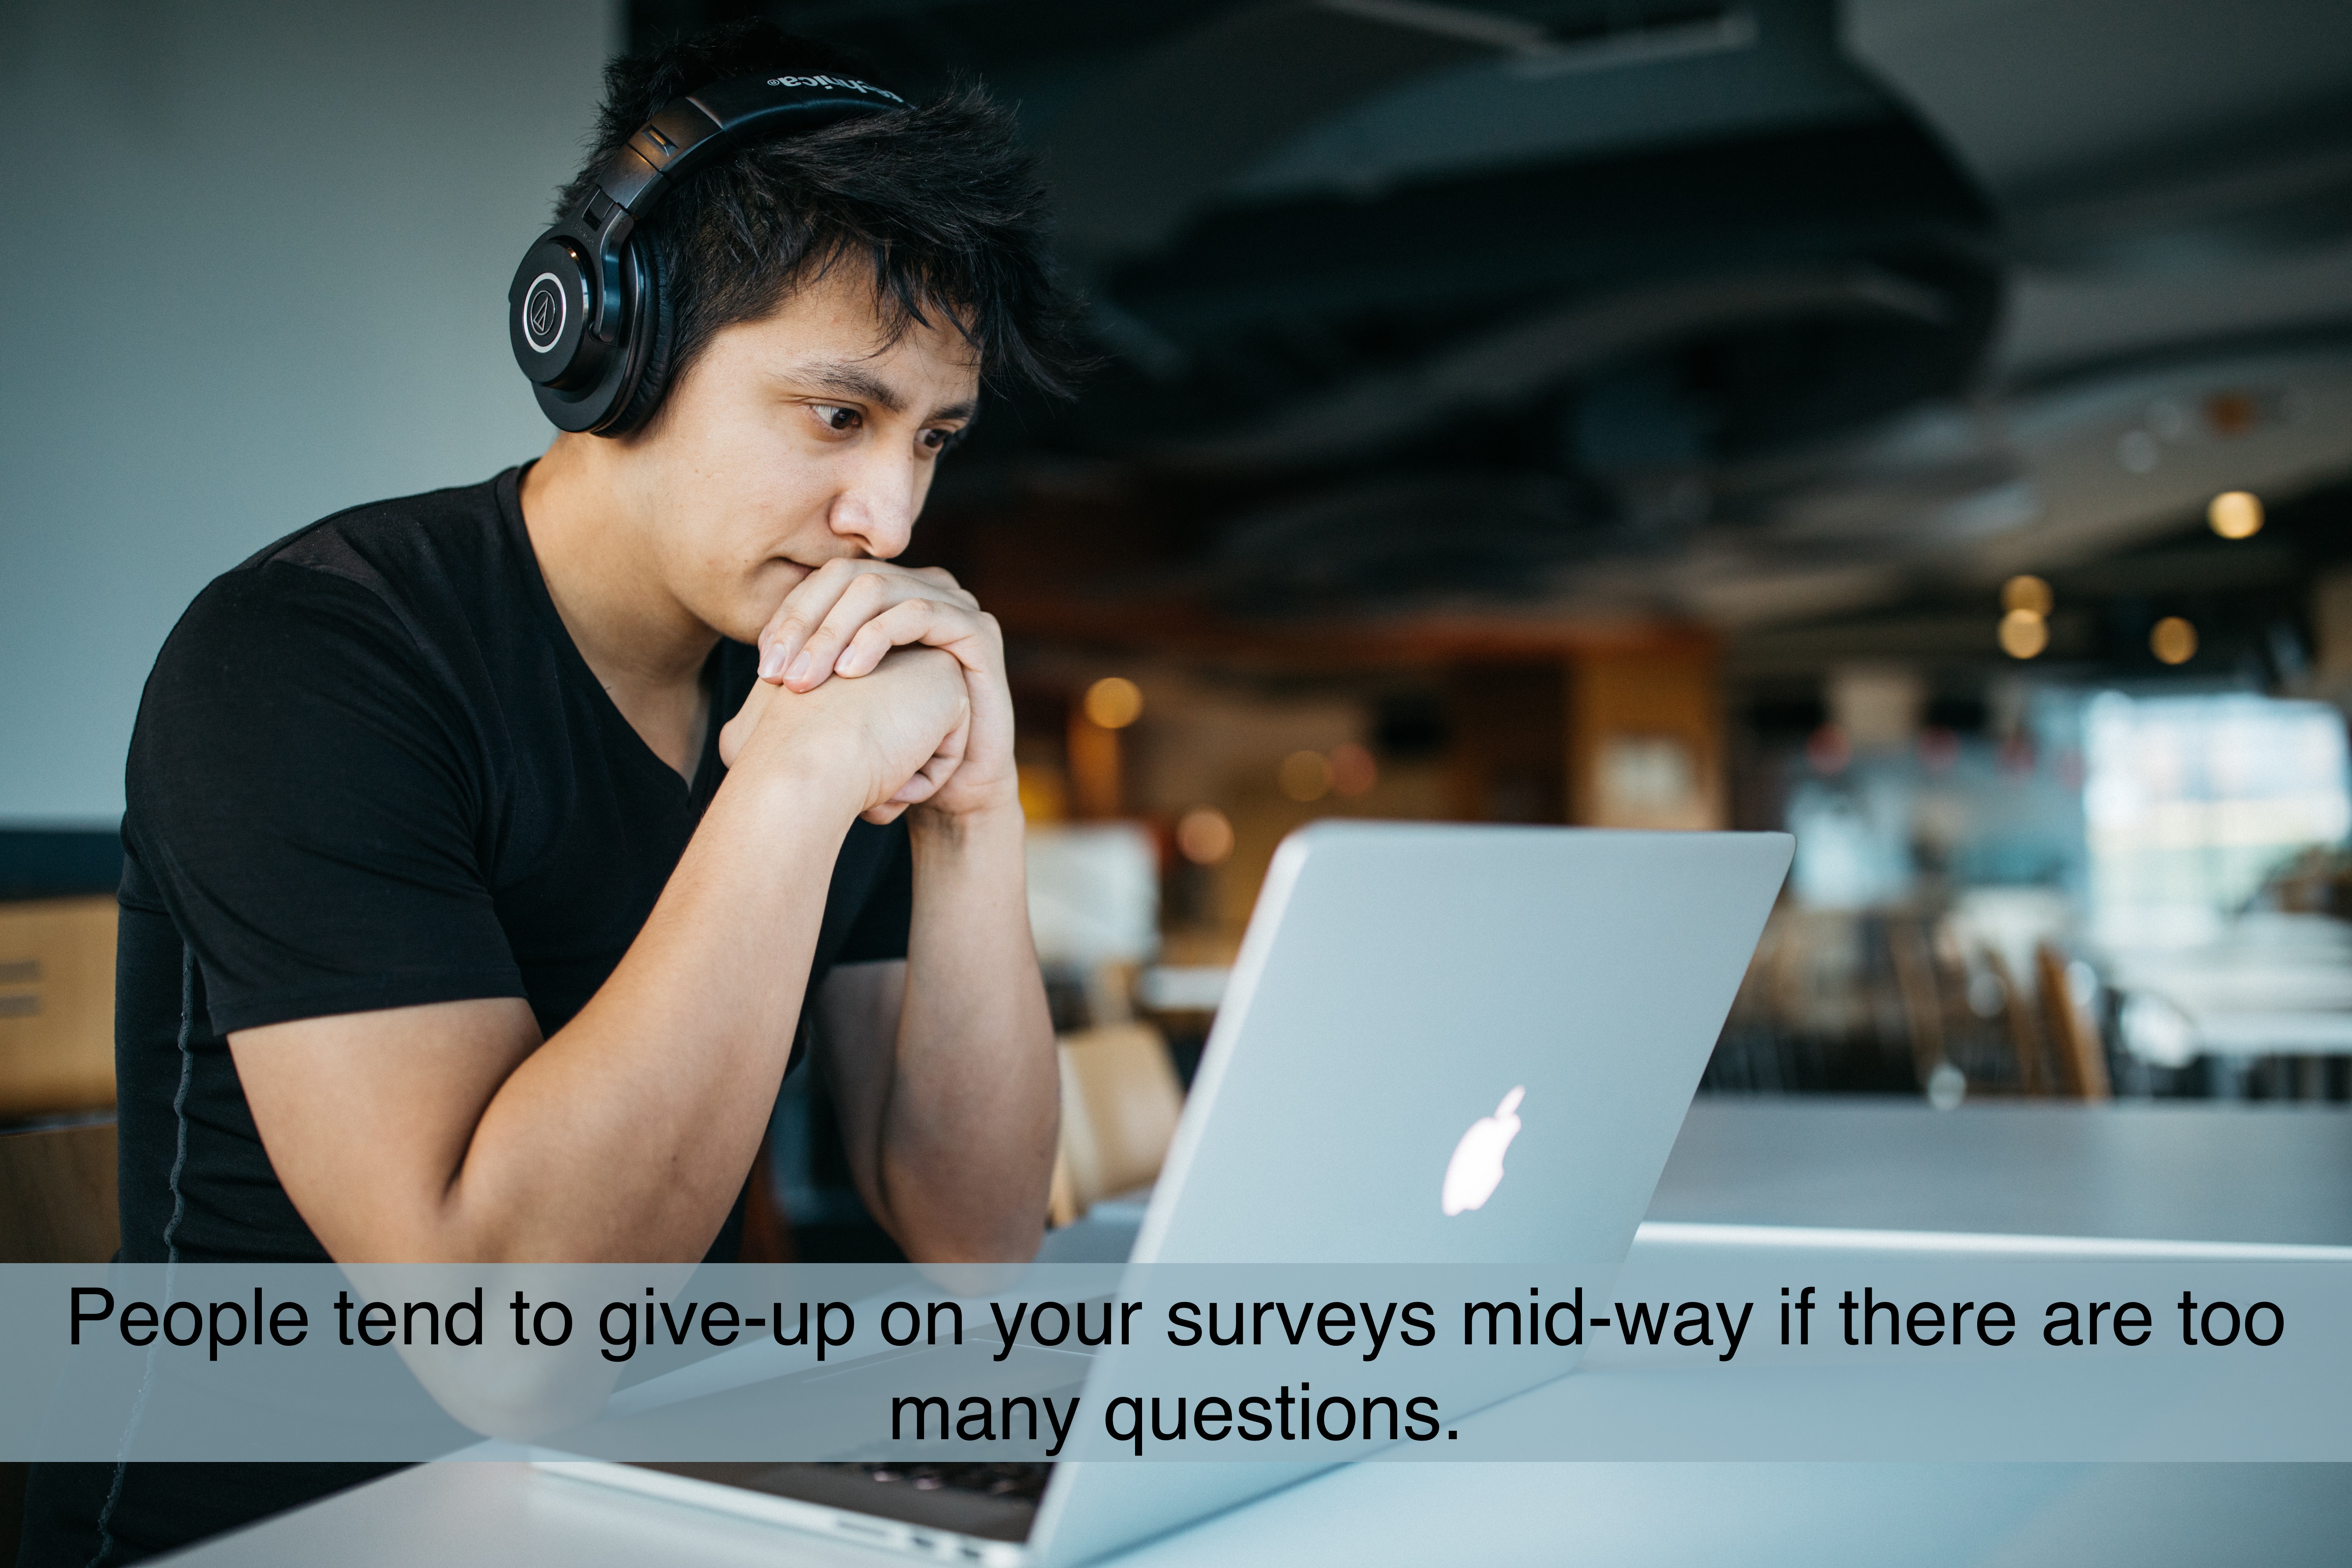 People tend to give-up on your surveys mid-way if there are too many questions.